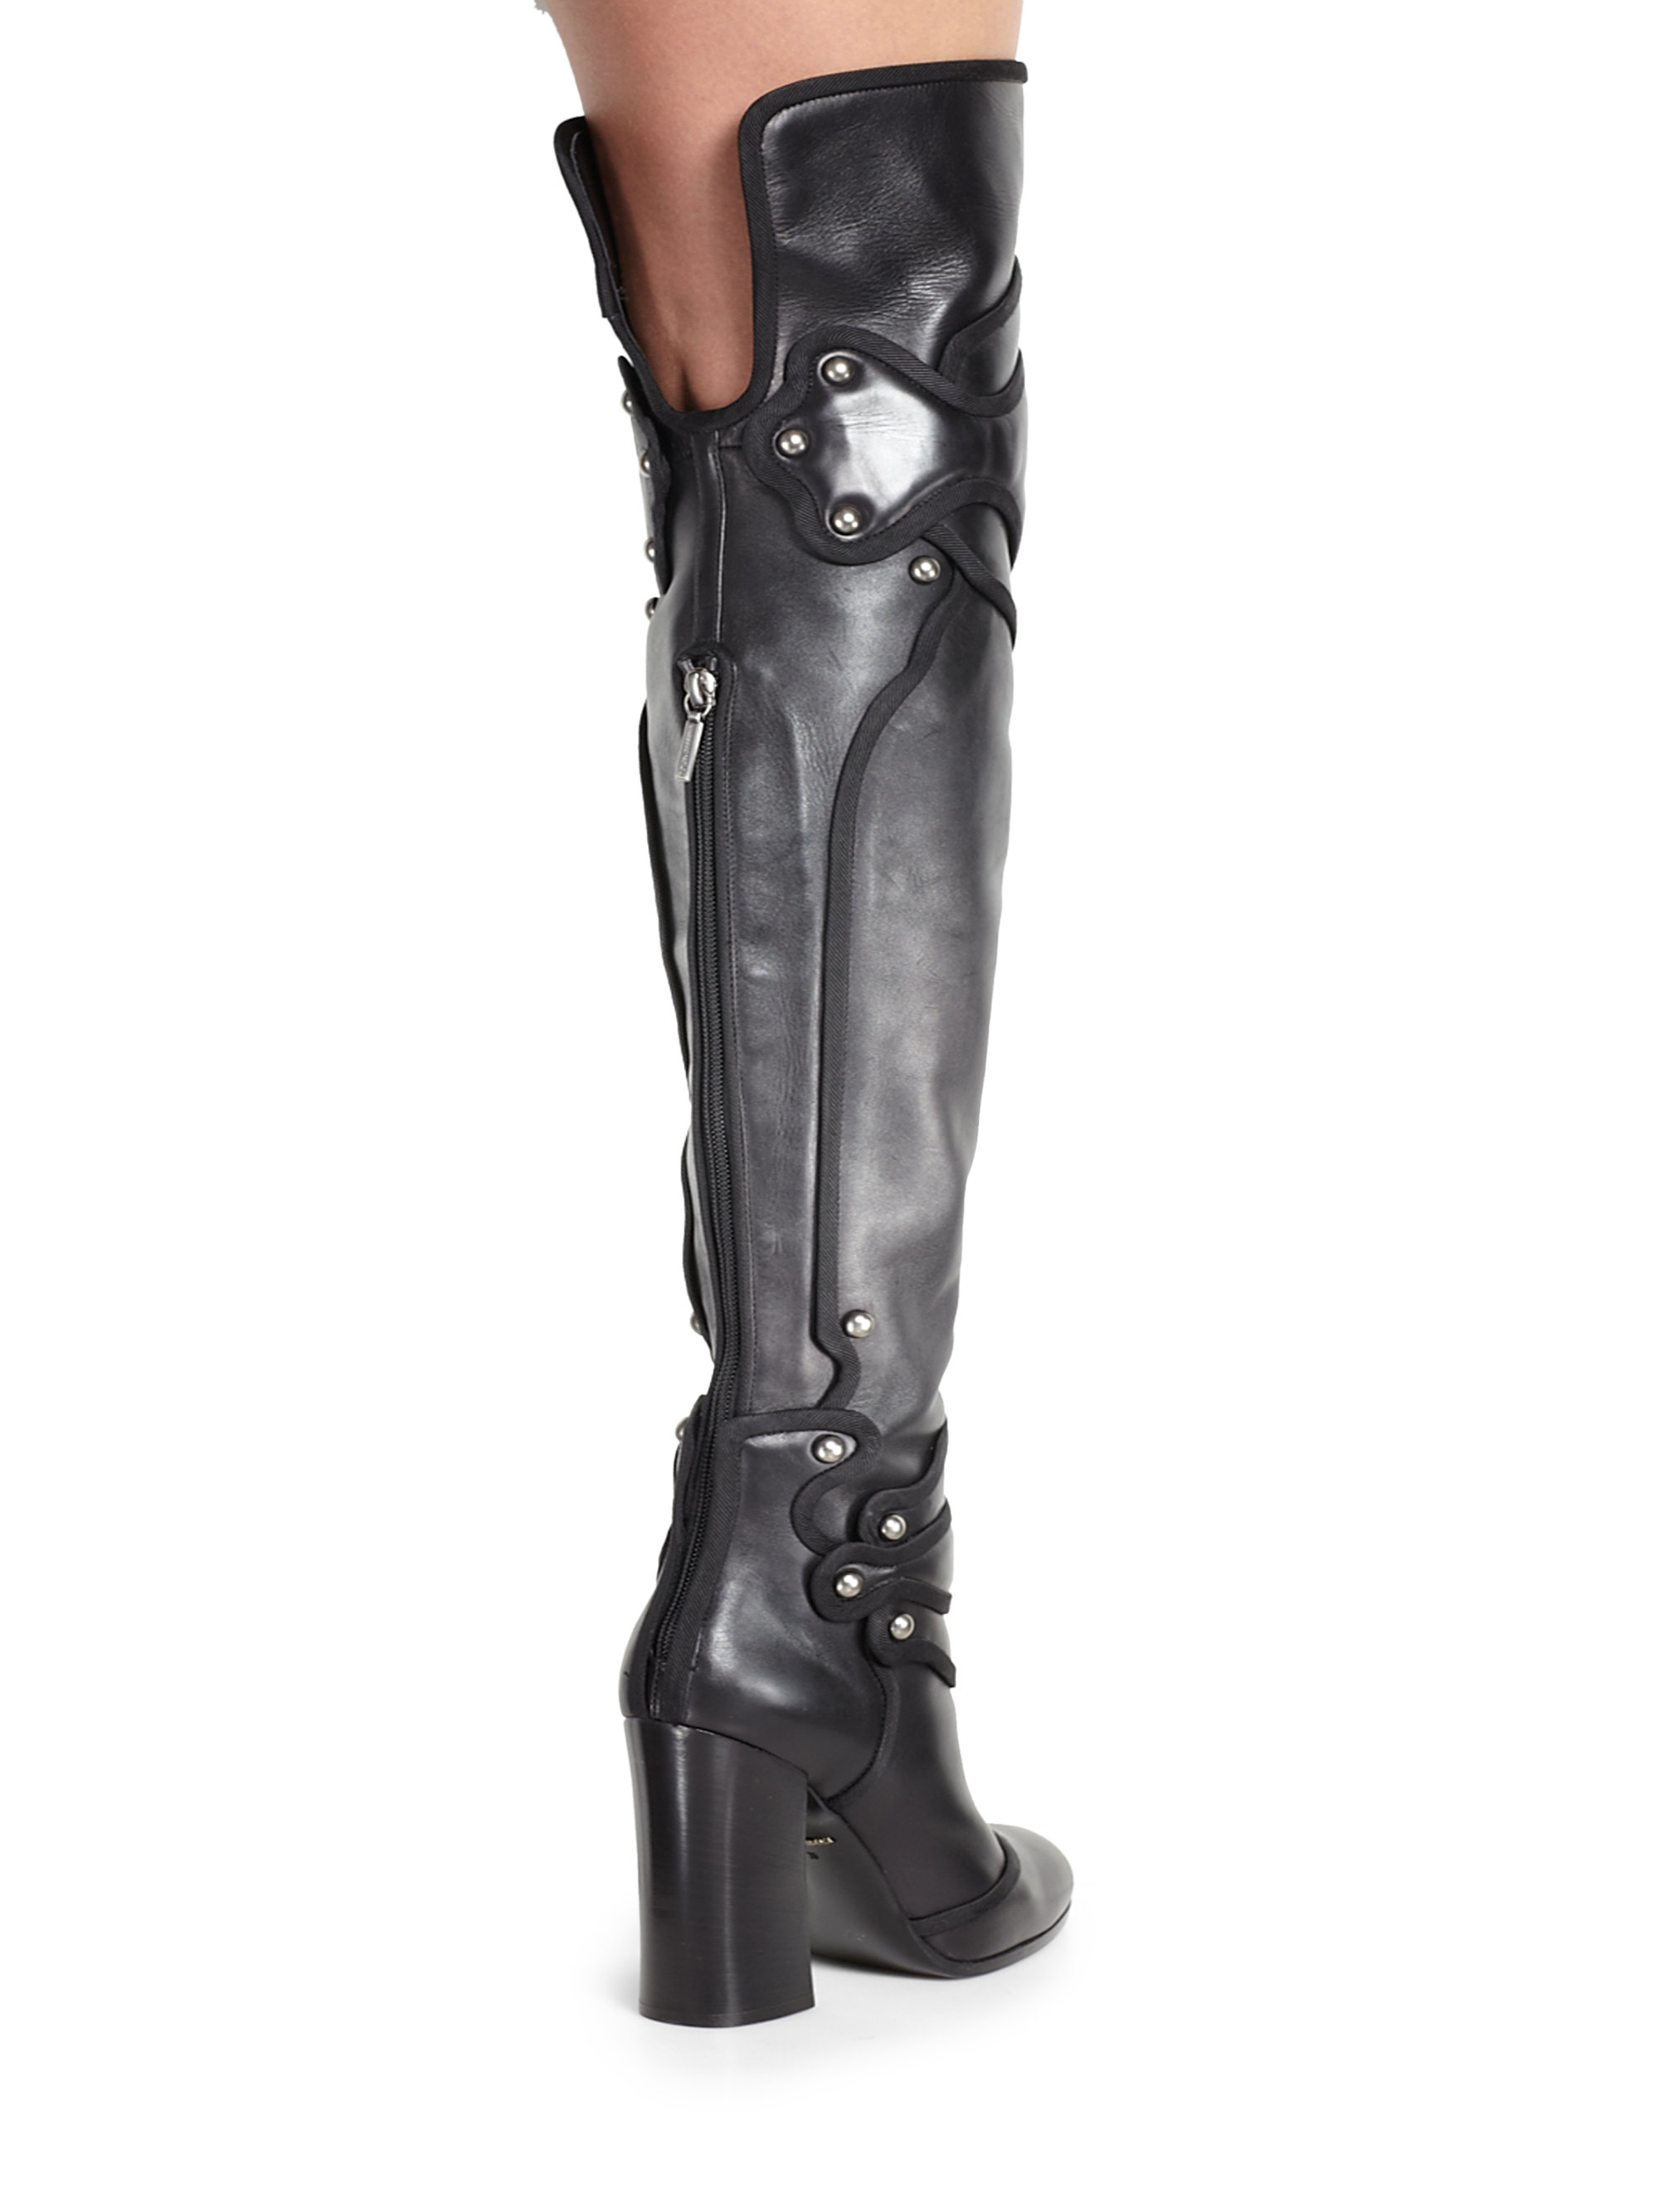 dolce-gabbana-black-leather-embroidered-over-the-knee-boots-product-1-21319266-1-054959974-normal.jpg